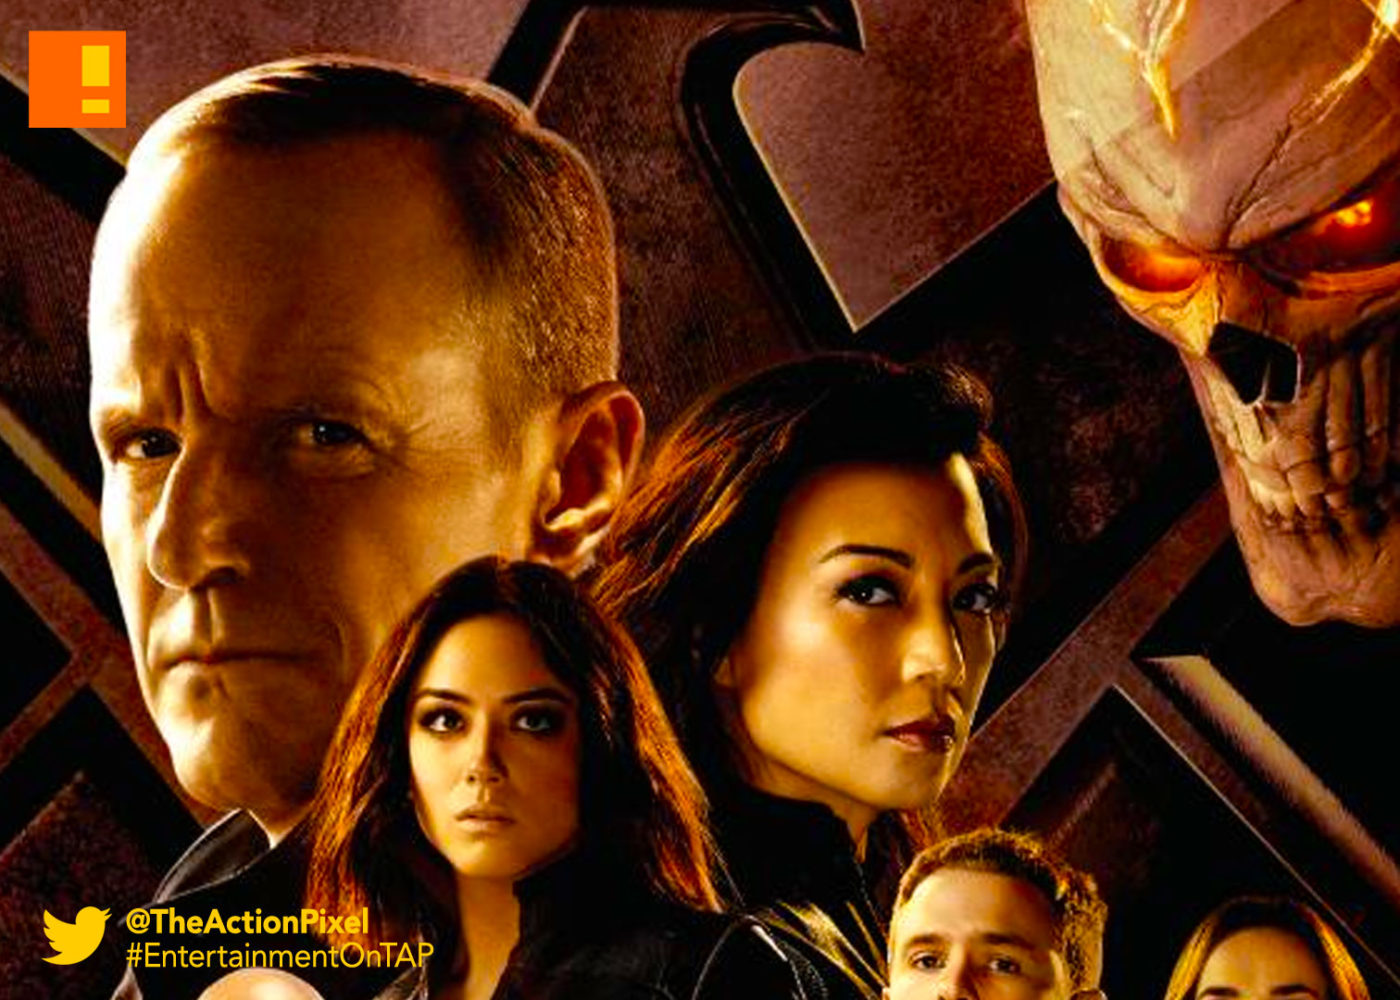 aos, agents of shield, season 4, marvel, abc, ghost rider, the action pixel, entertainment on tap,